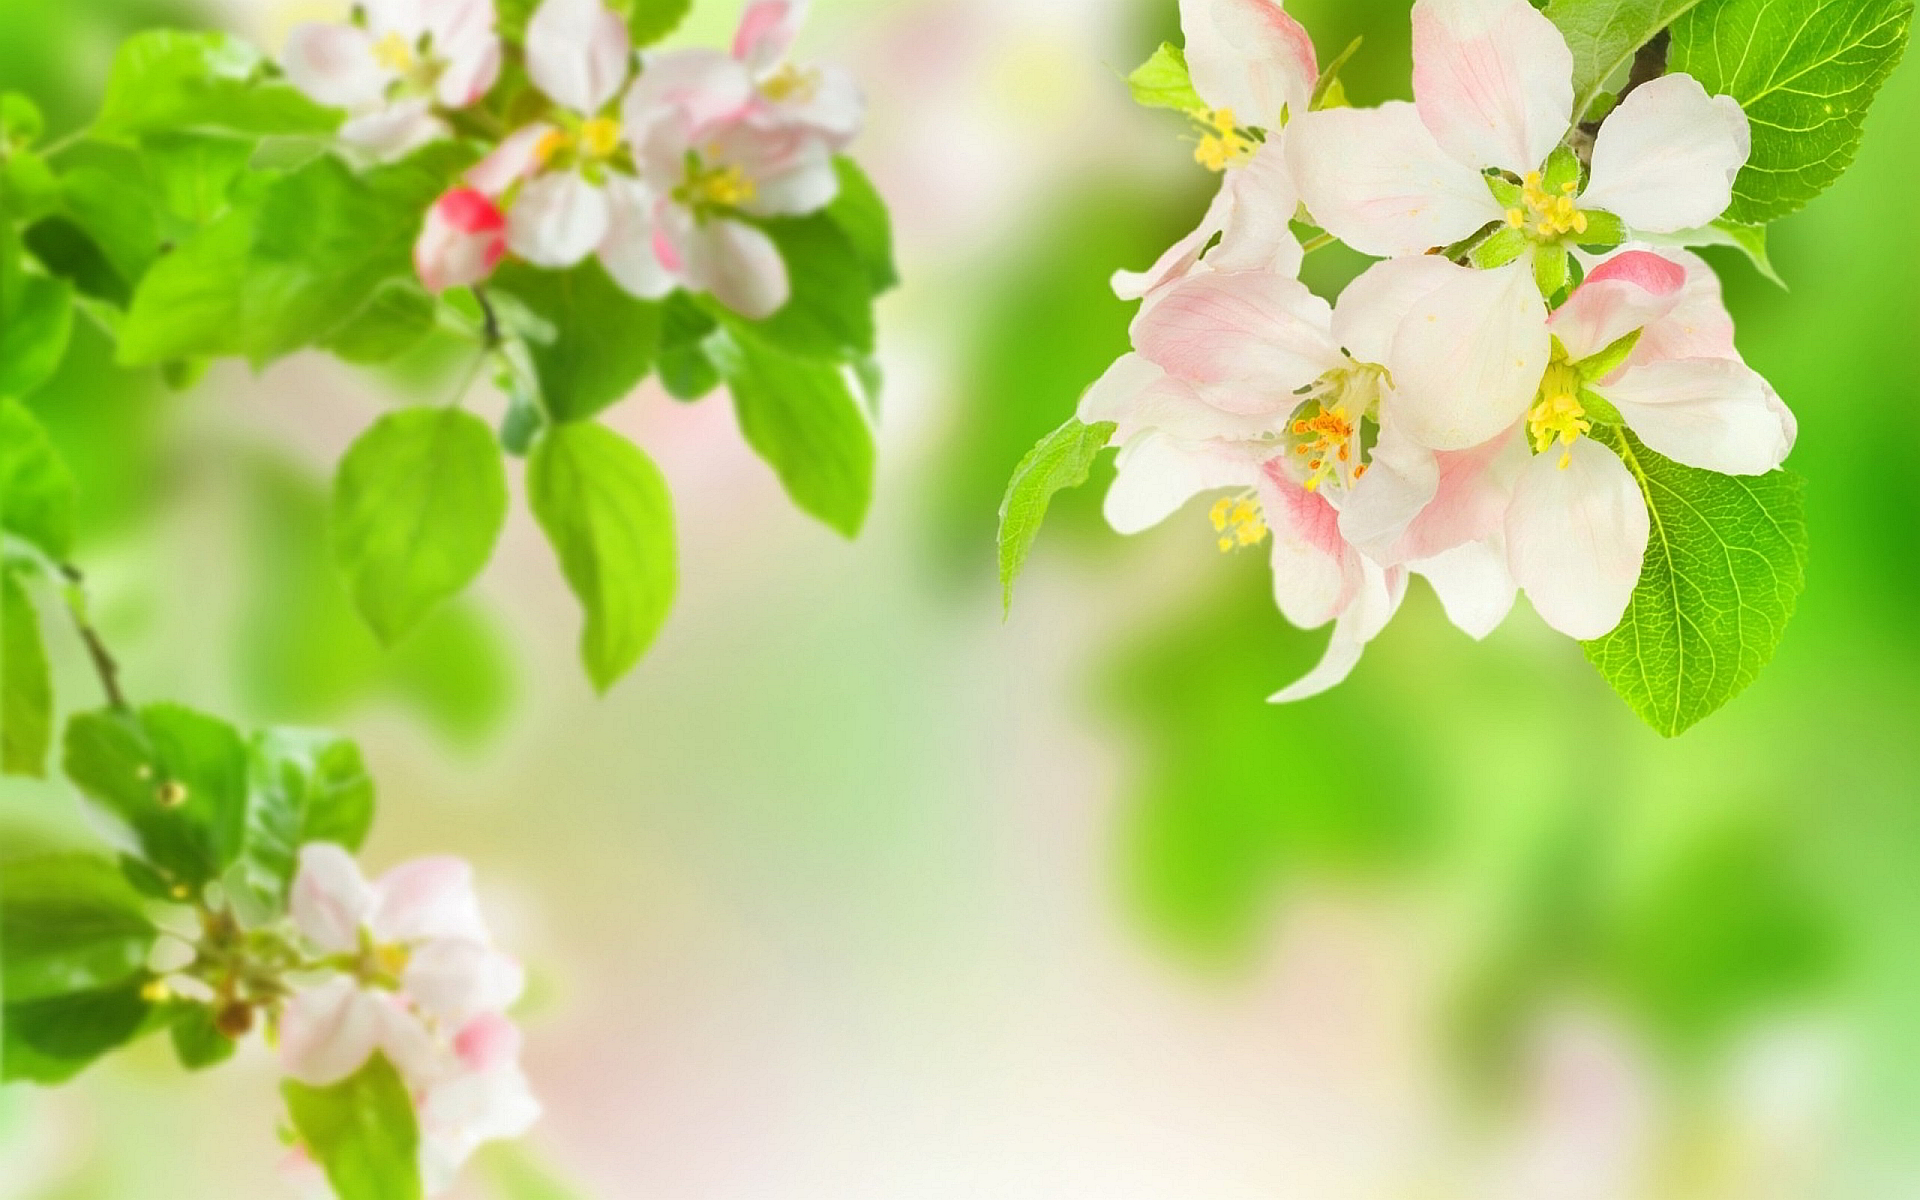 Summer Spring Flowers Wallpaper